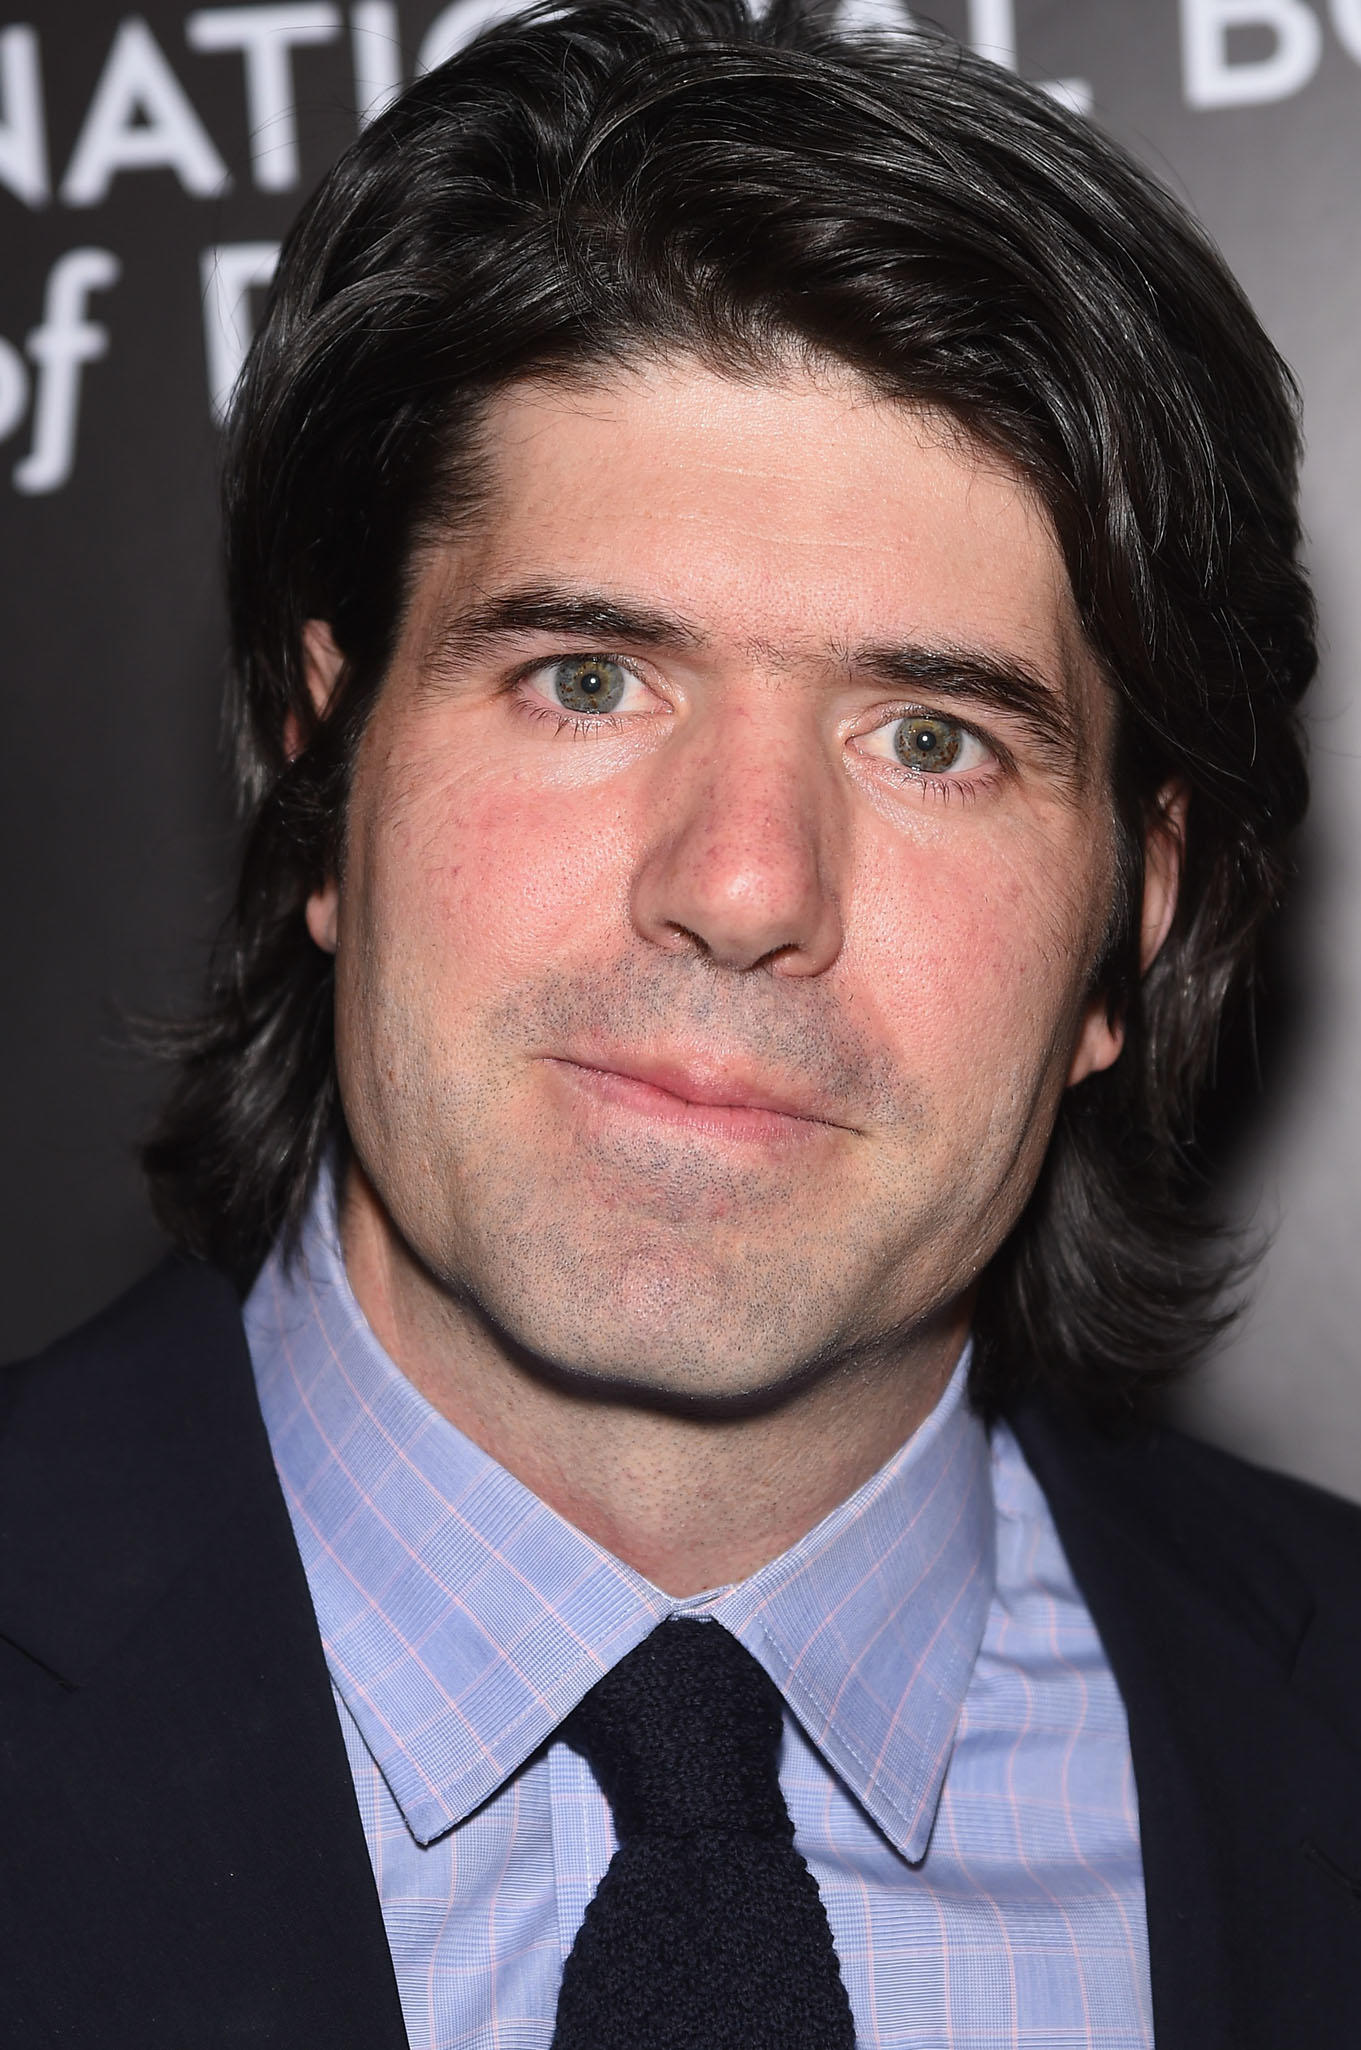 J.C. Chandor at the 2014 National Board of Review Gala in New York City.